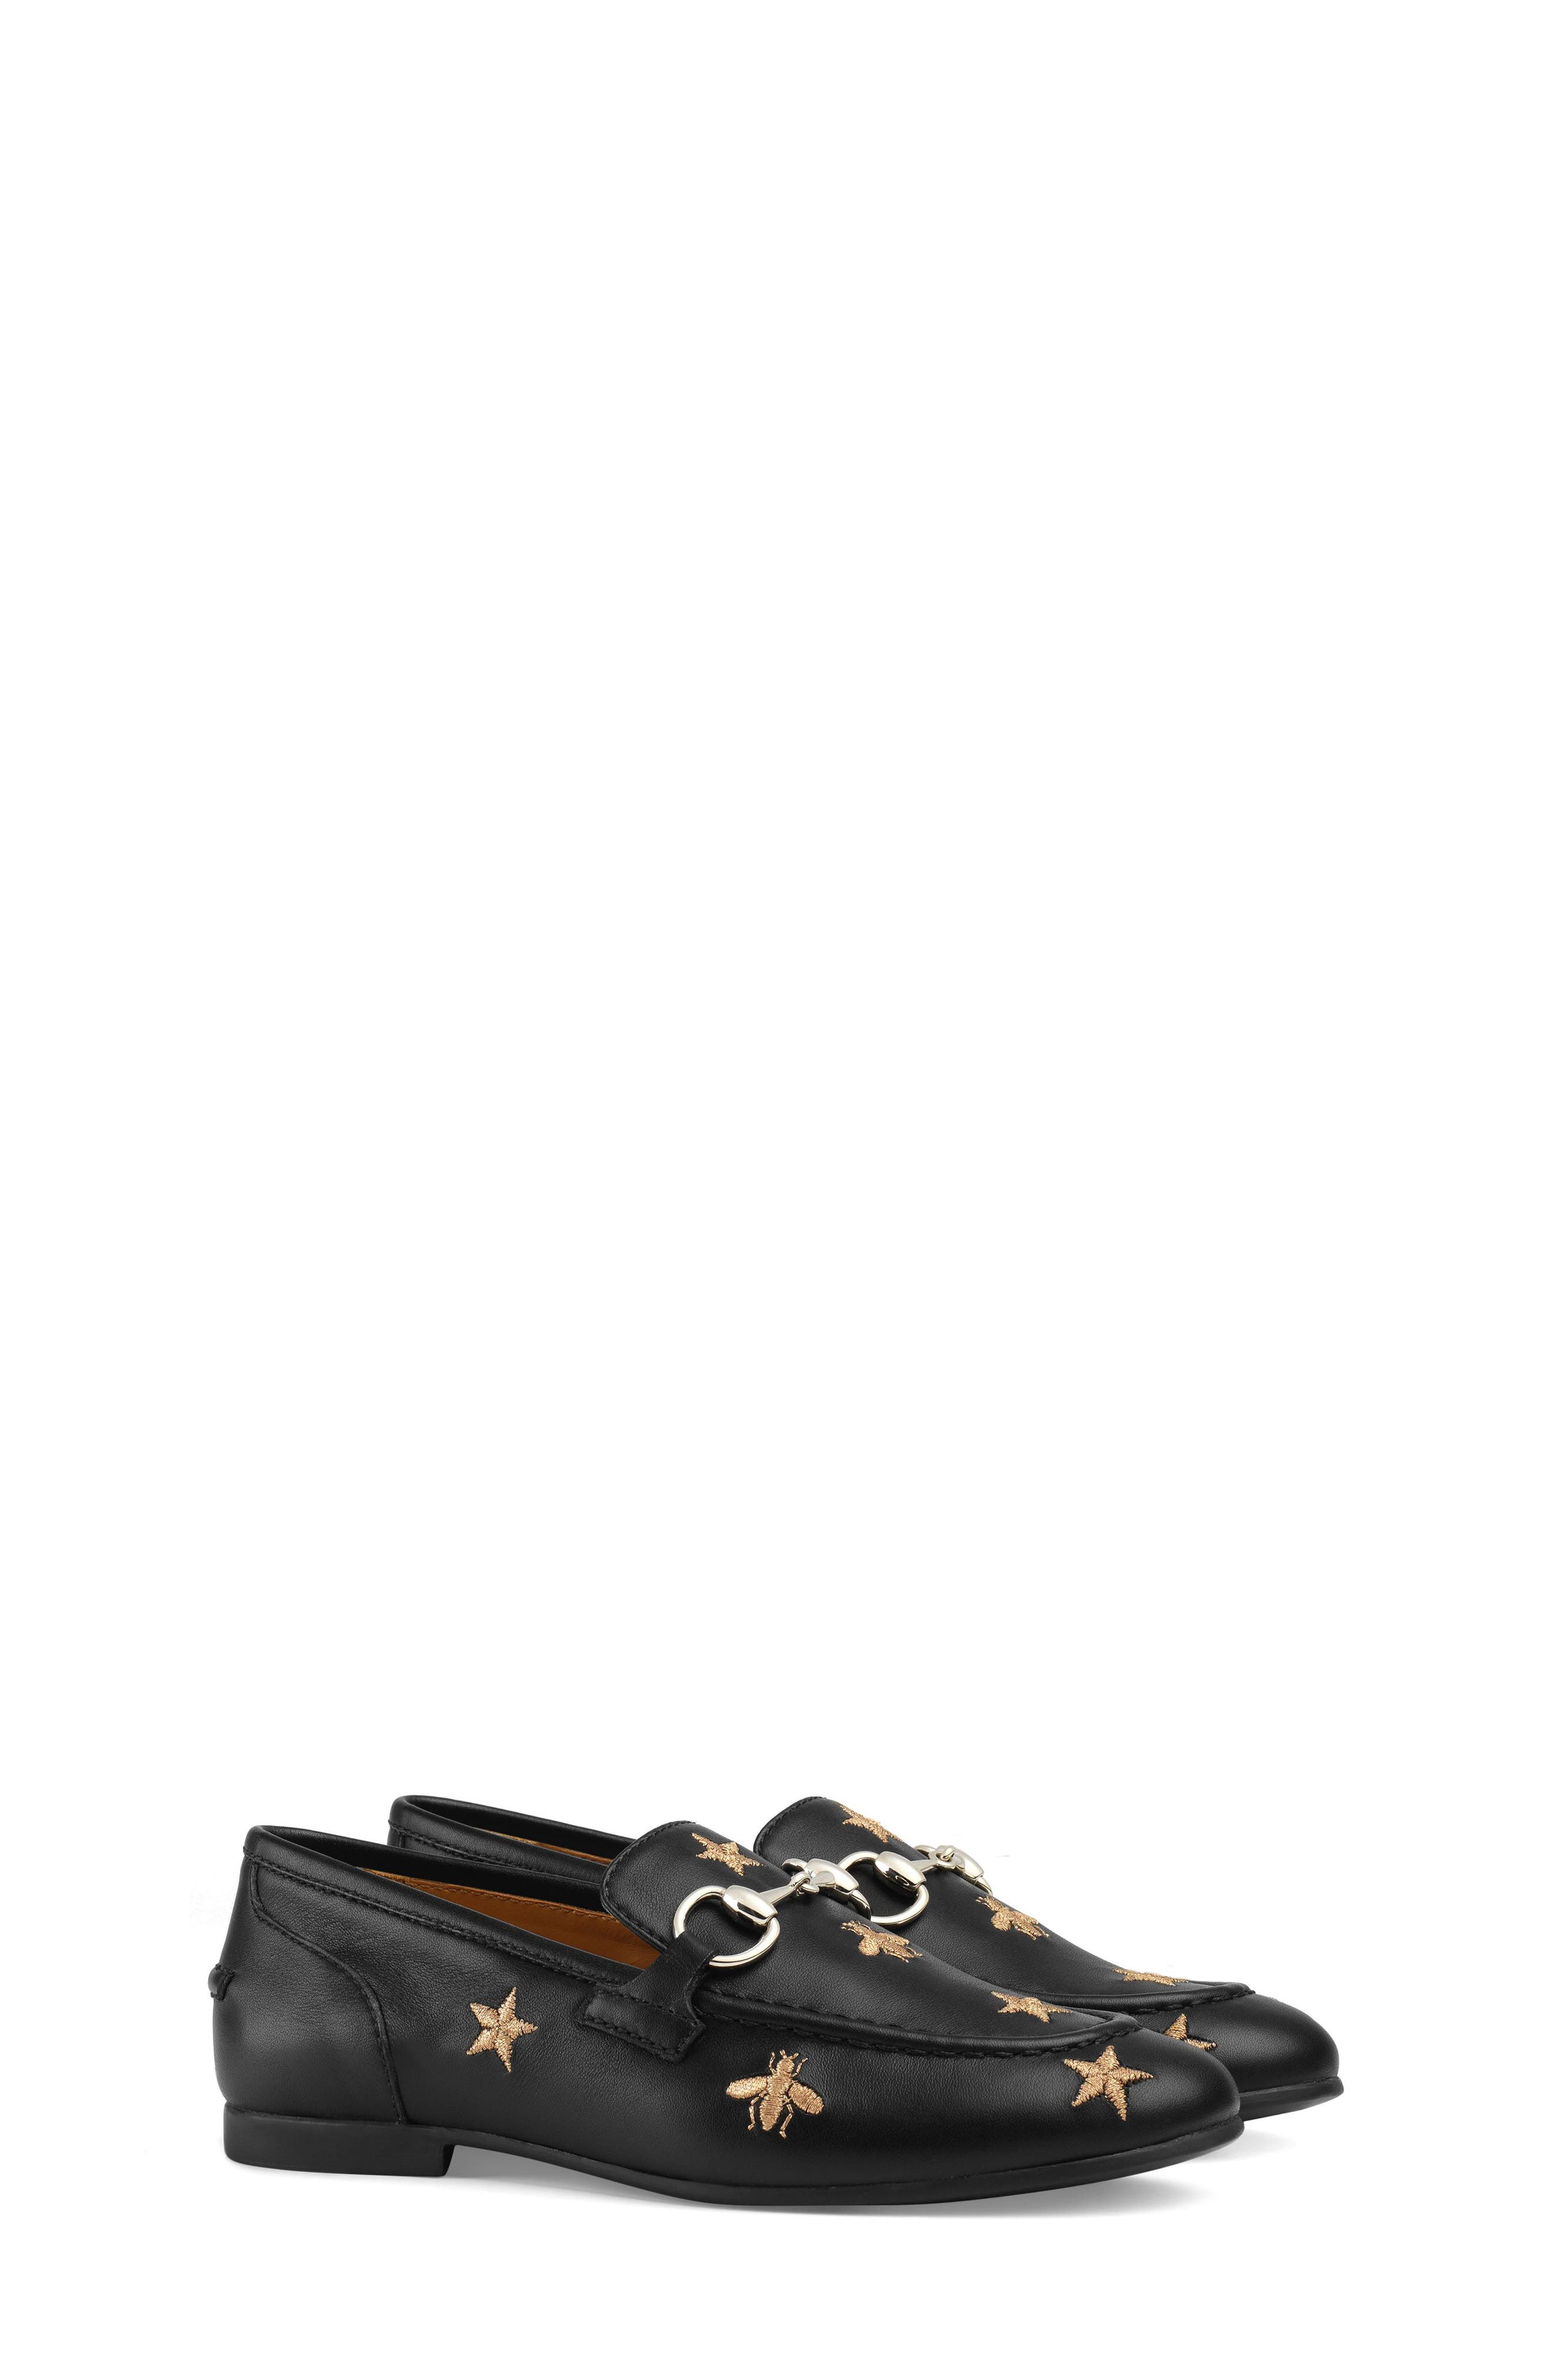 Jordaan Bit Loafer,                         Main,                         color, BLACK